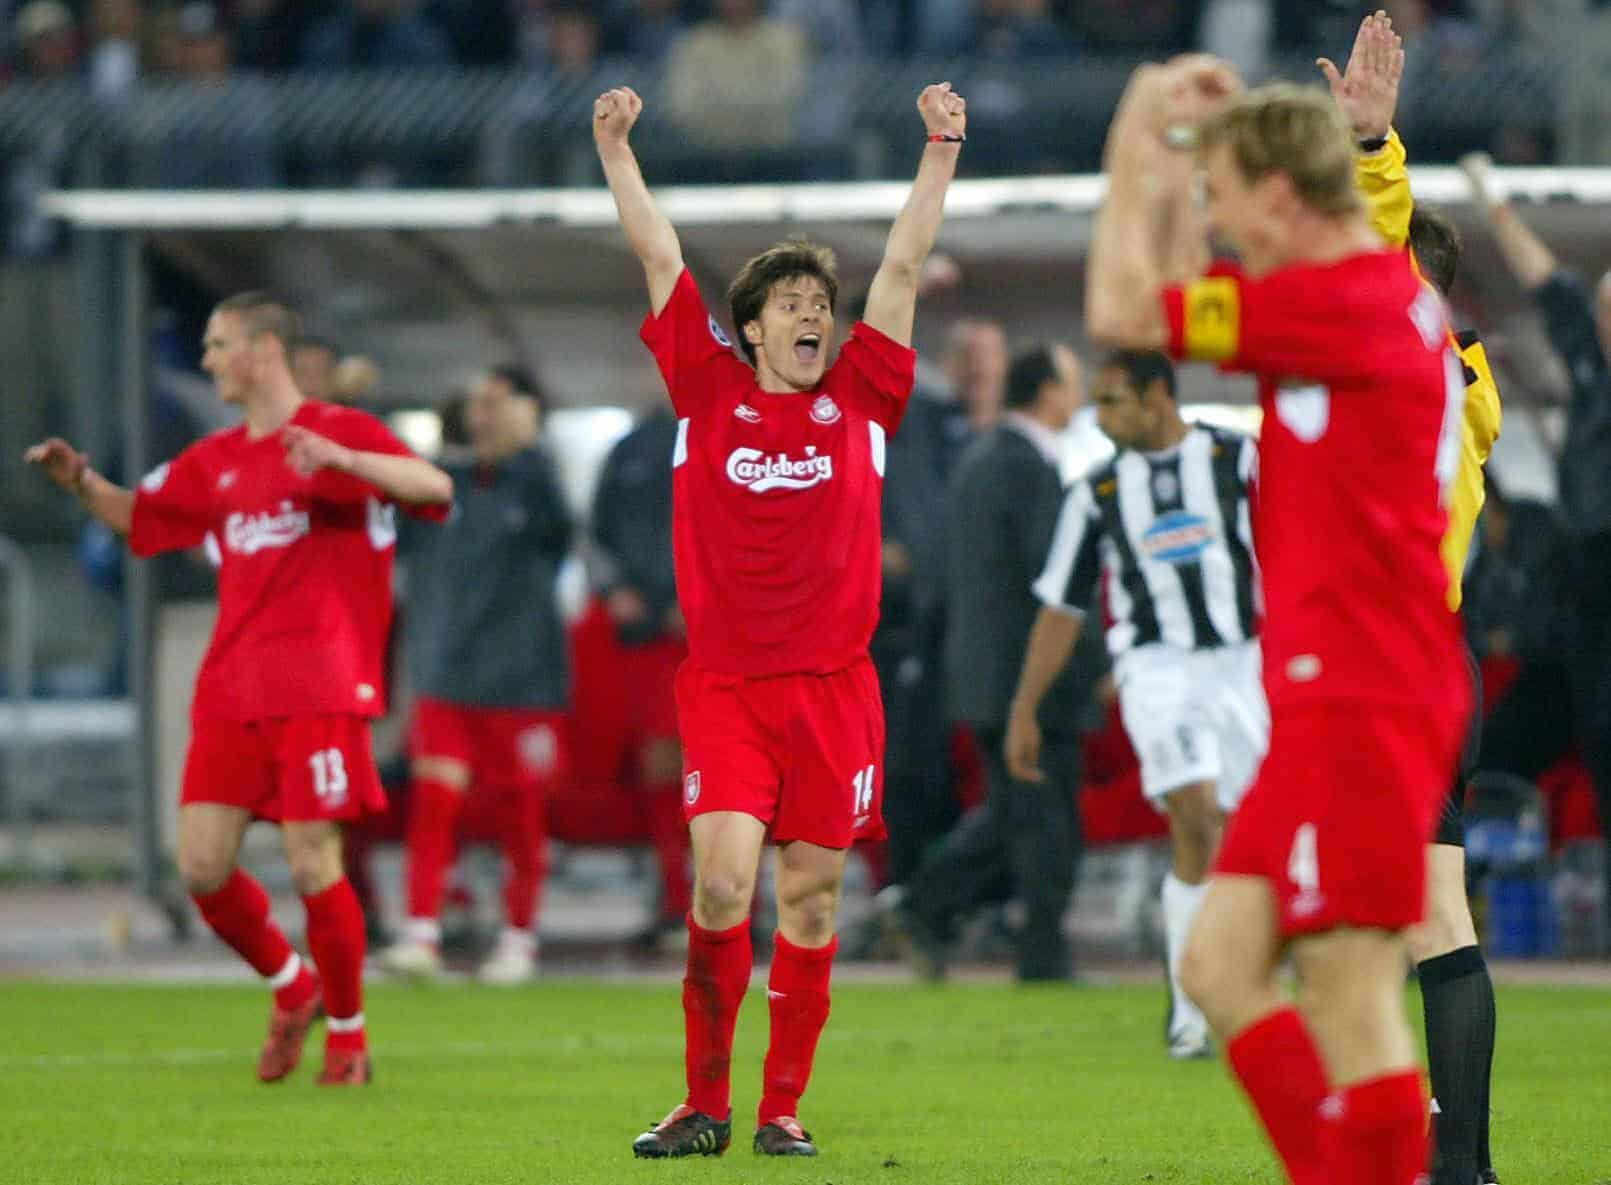 Liverpool's Xabi Alonso (C) celebrates with team-mates at full time. Juventus, 2005 (Martin Rickett/PA Archive/PA Images)